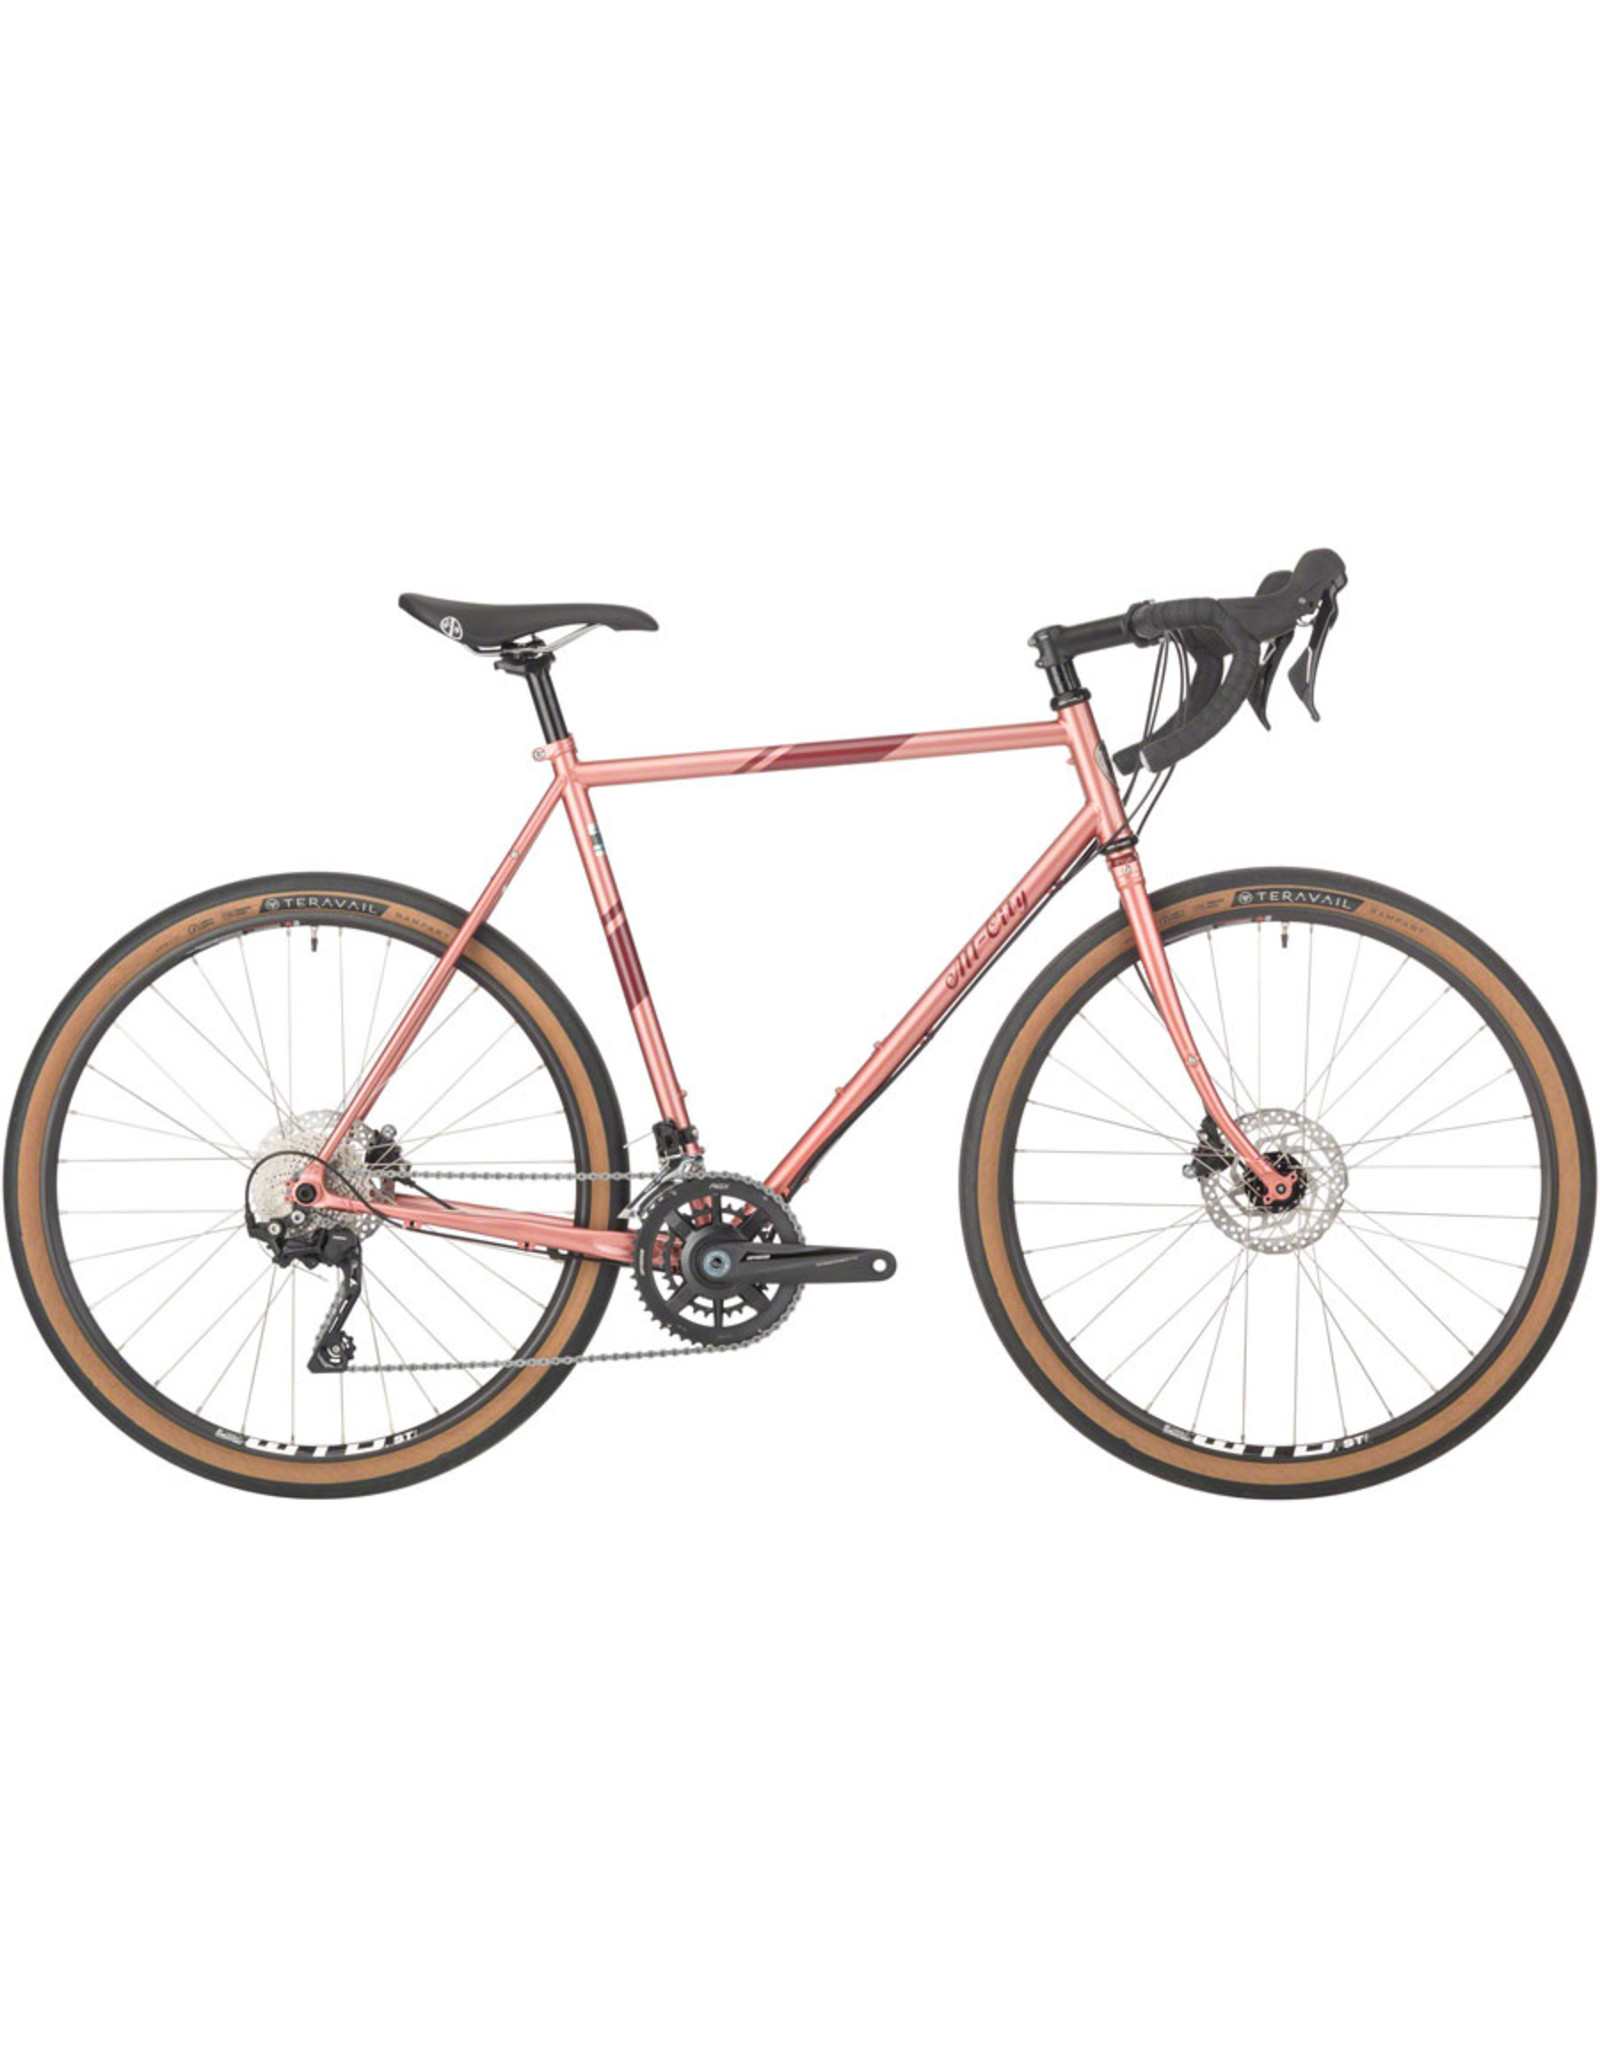 All-City All-City Space Horse 650b GRX